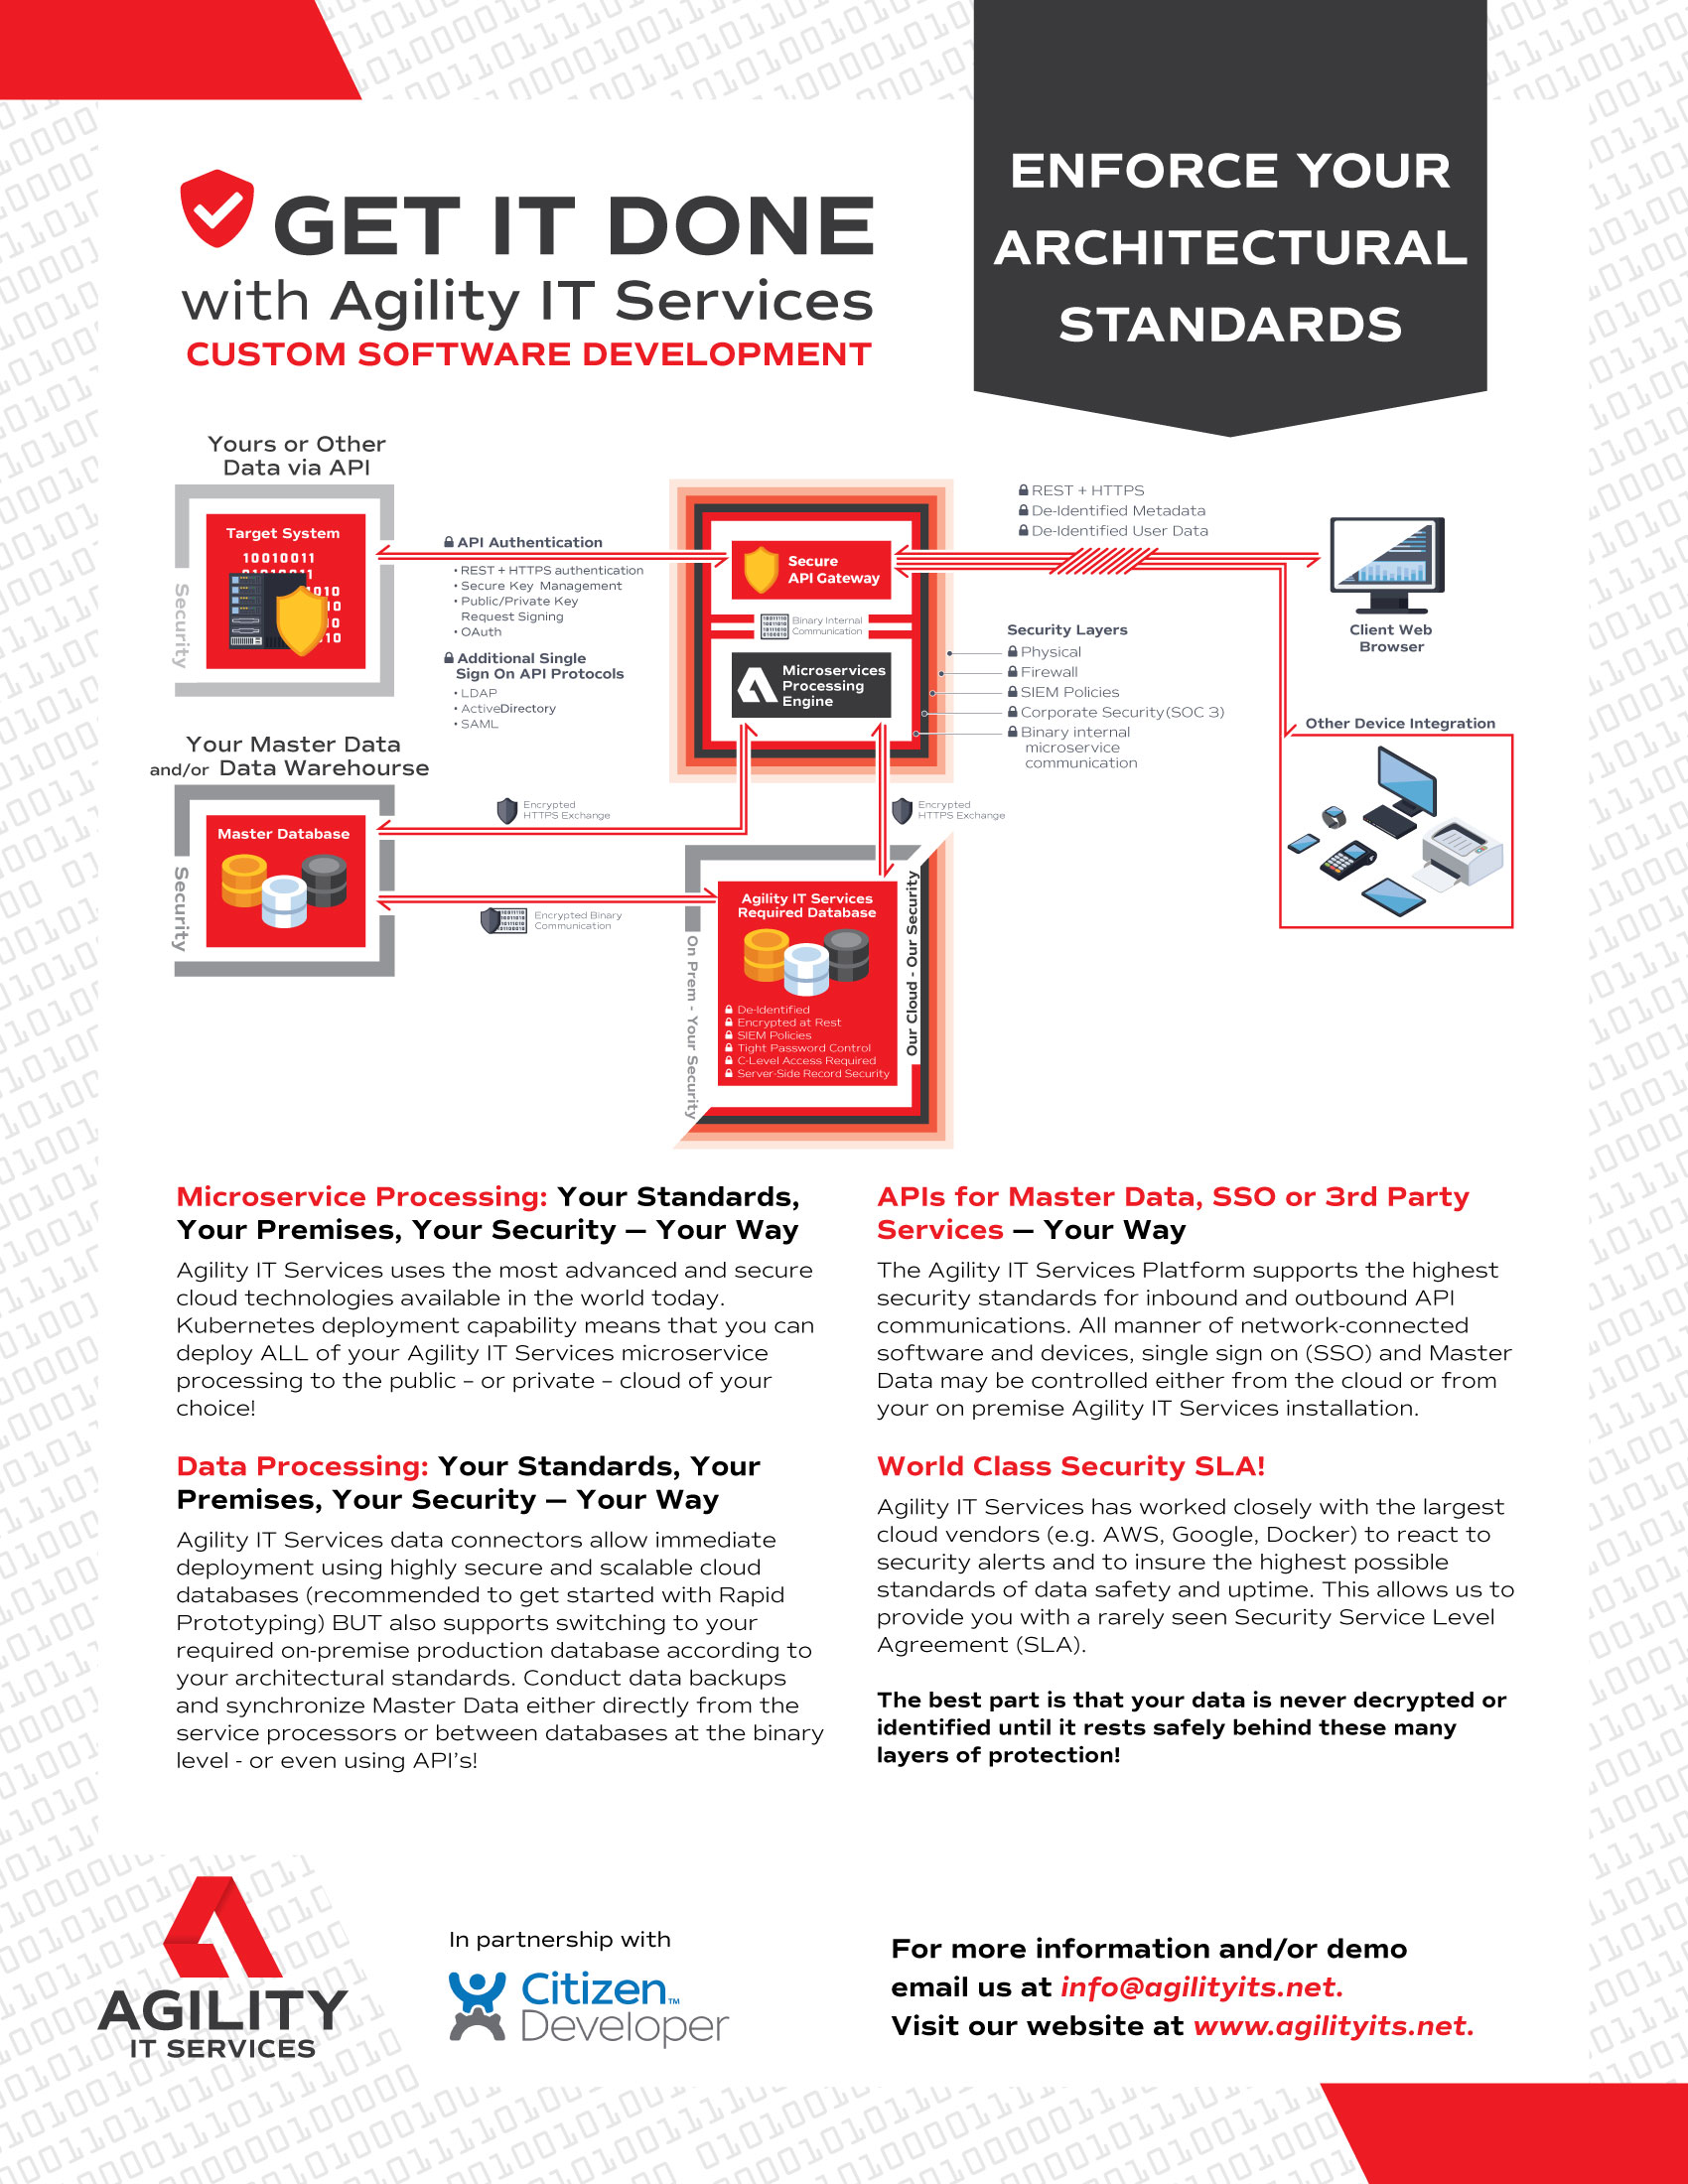 Agility IT Services - Enforce Your Architectural Standards